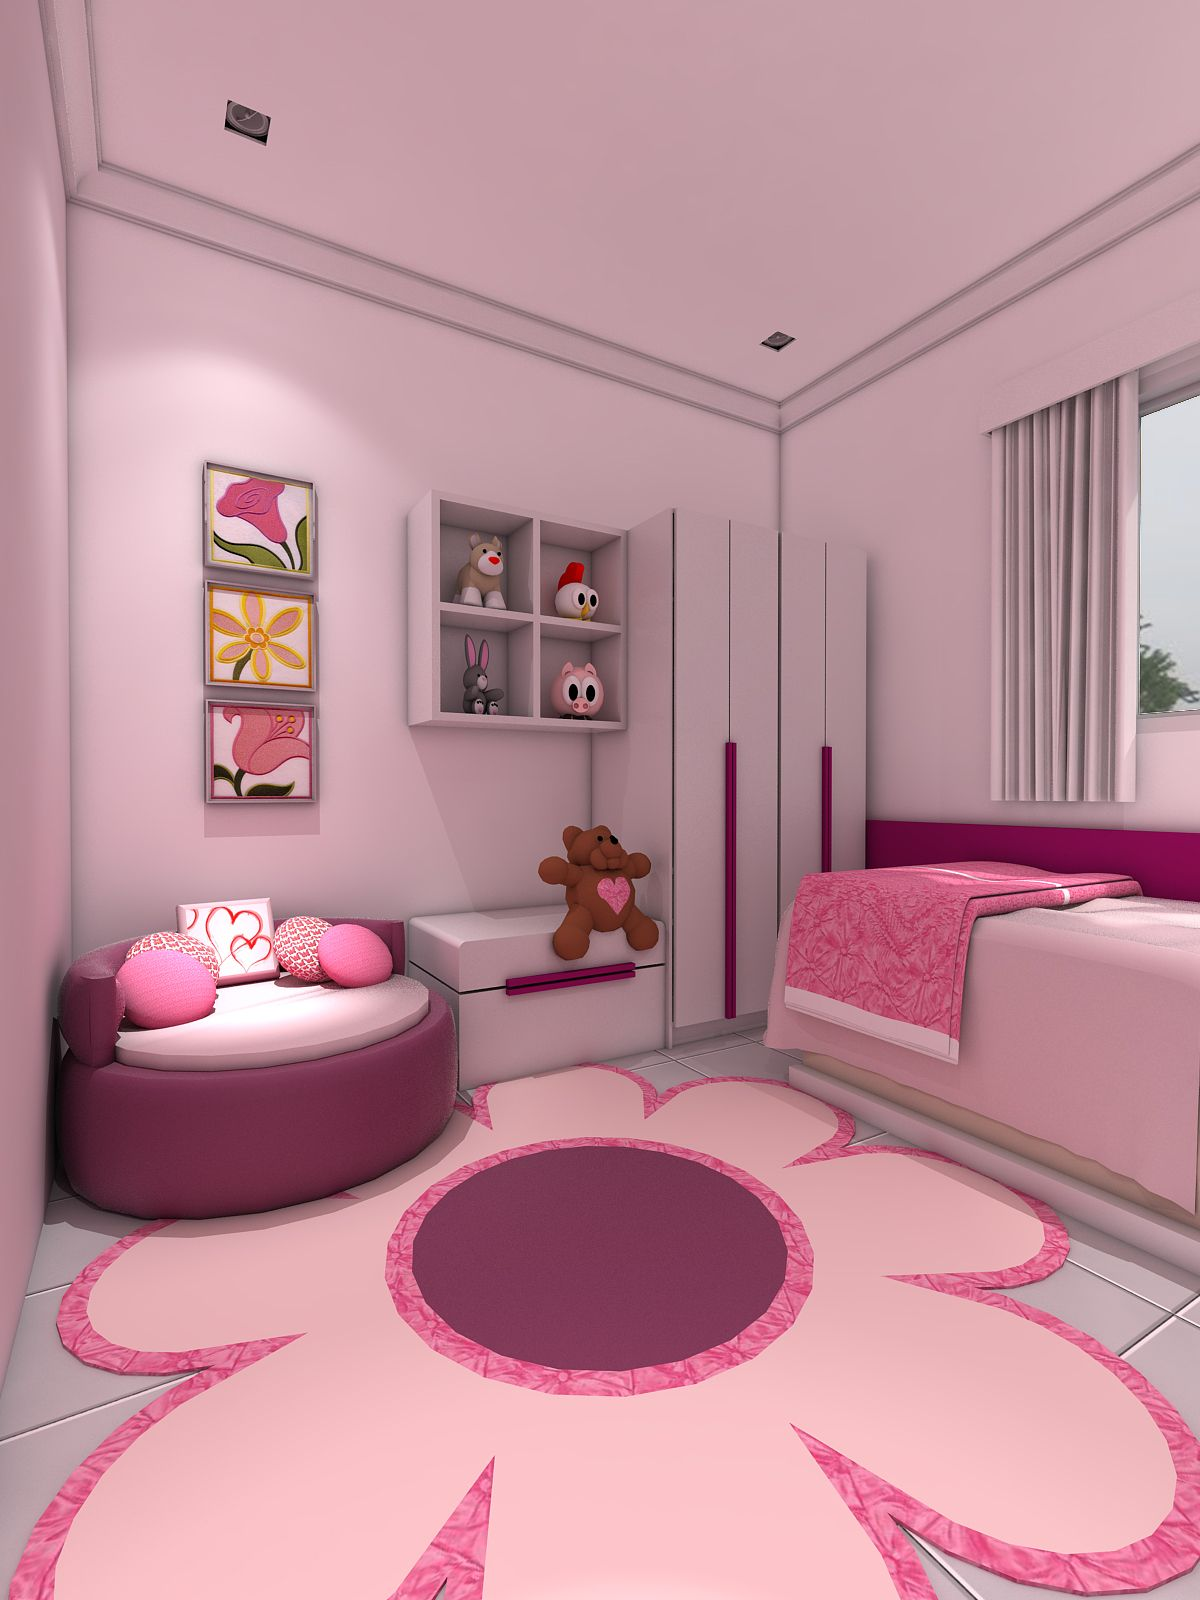 100 14 Beautiful Girls Bedroom Ideas For Small Rooms Teenage Bedroom Ideas Archlux Net Wallpapers